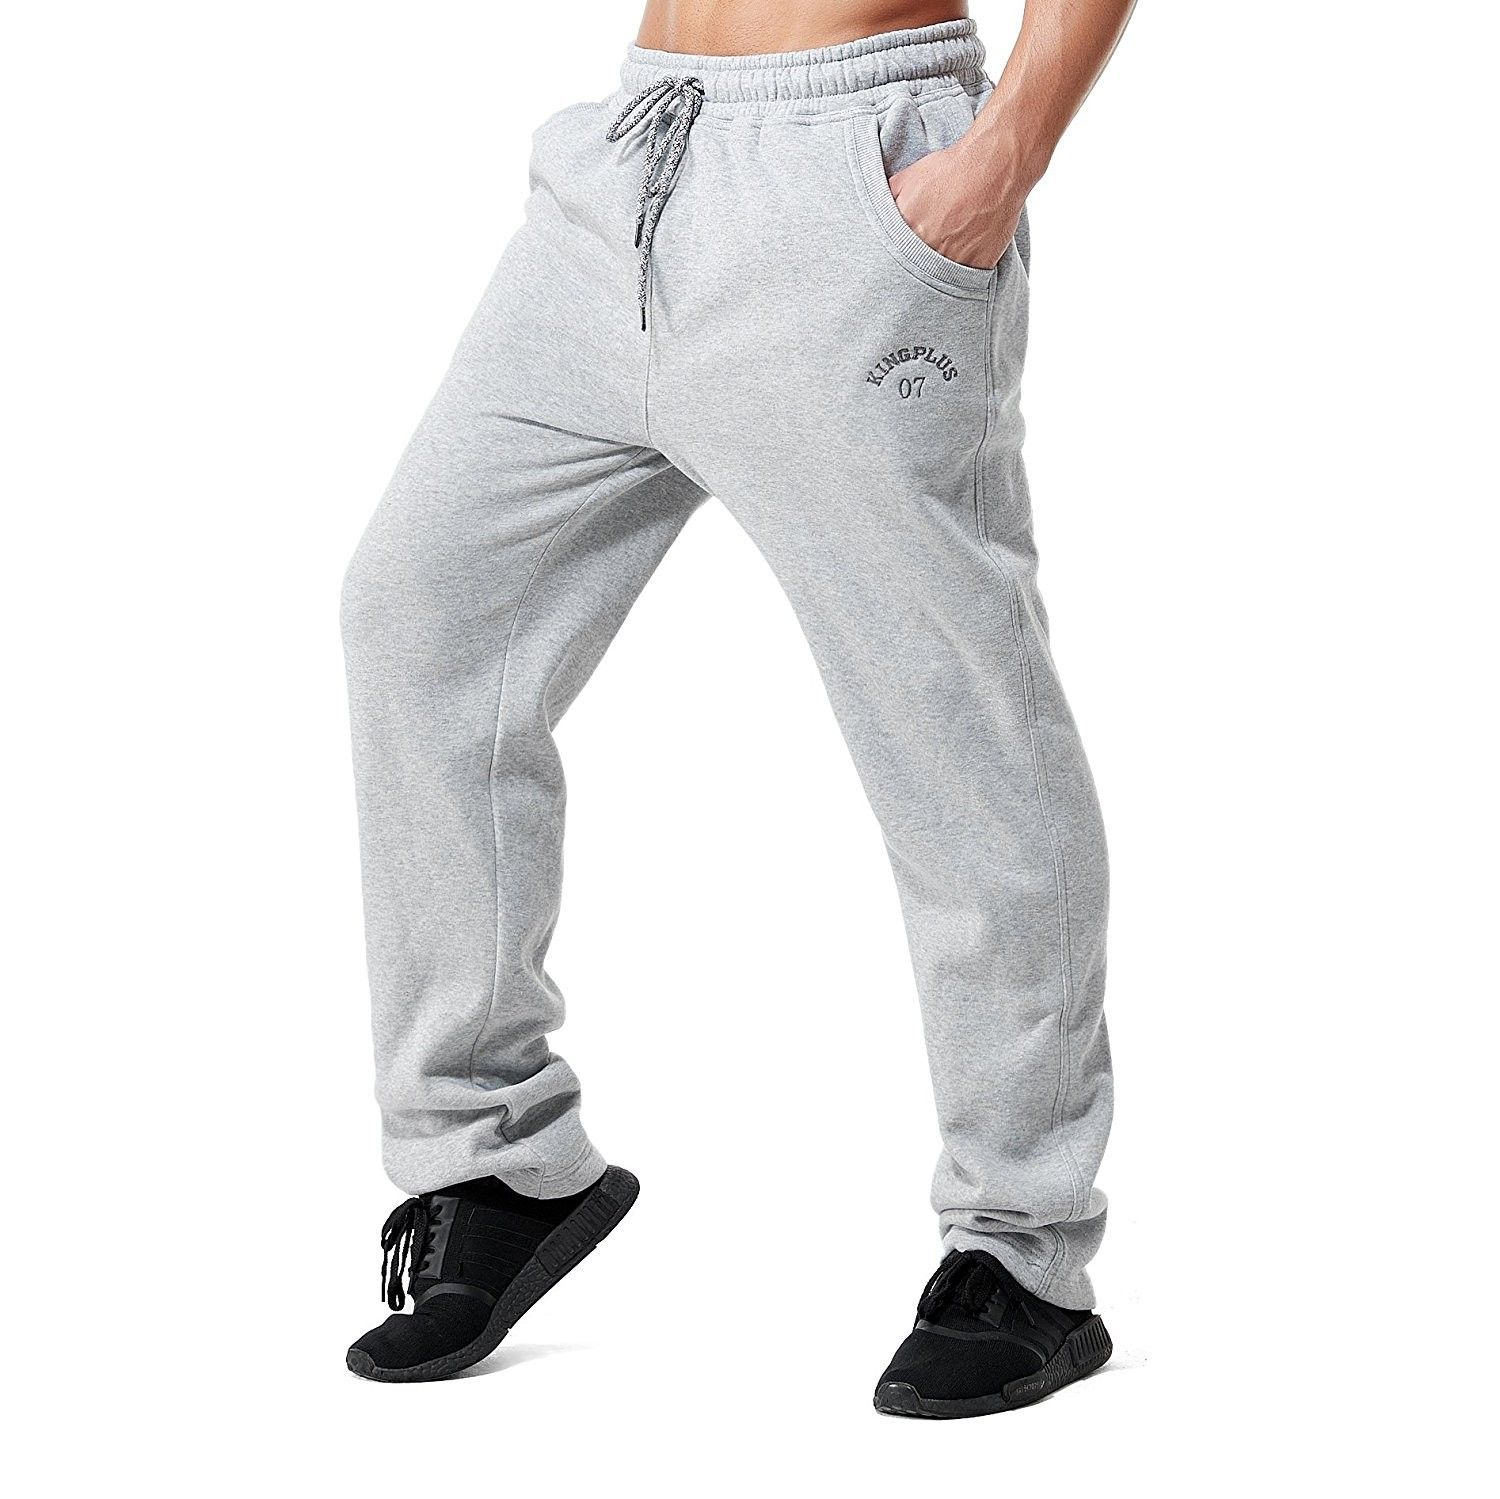 Kingplussports Mens Big And Tall Fleece Open Bottom Sweatpants Ligtgray Ck185gw2ltr Mens Big And Tall Mens Clothing Styles Mens Outfits